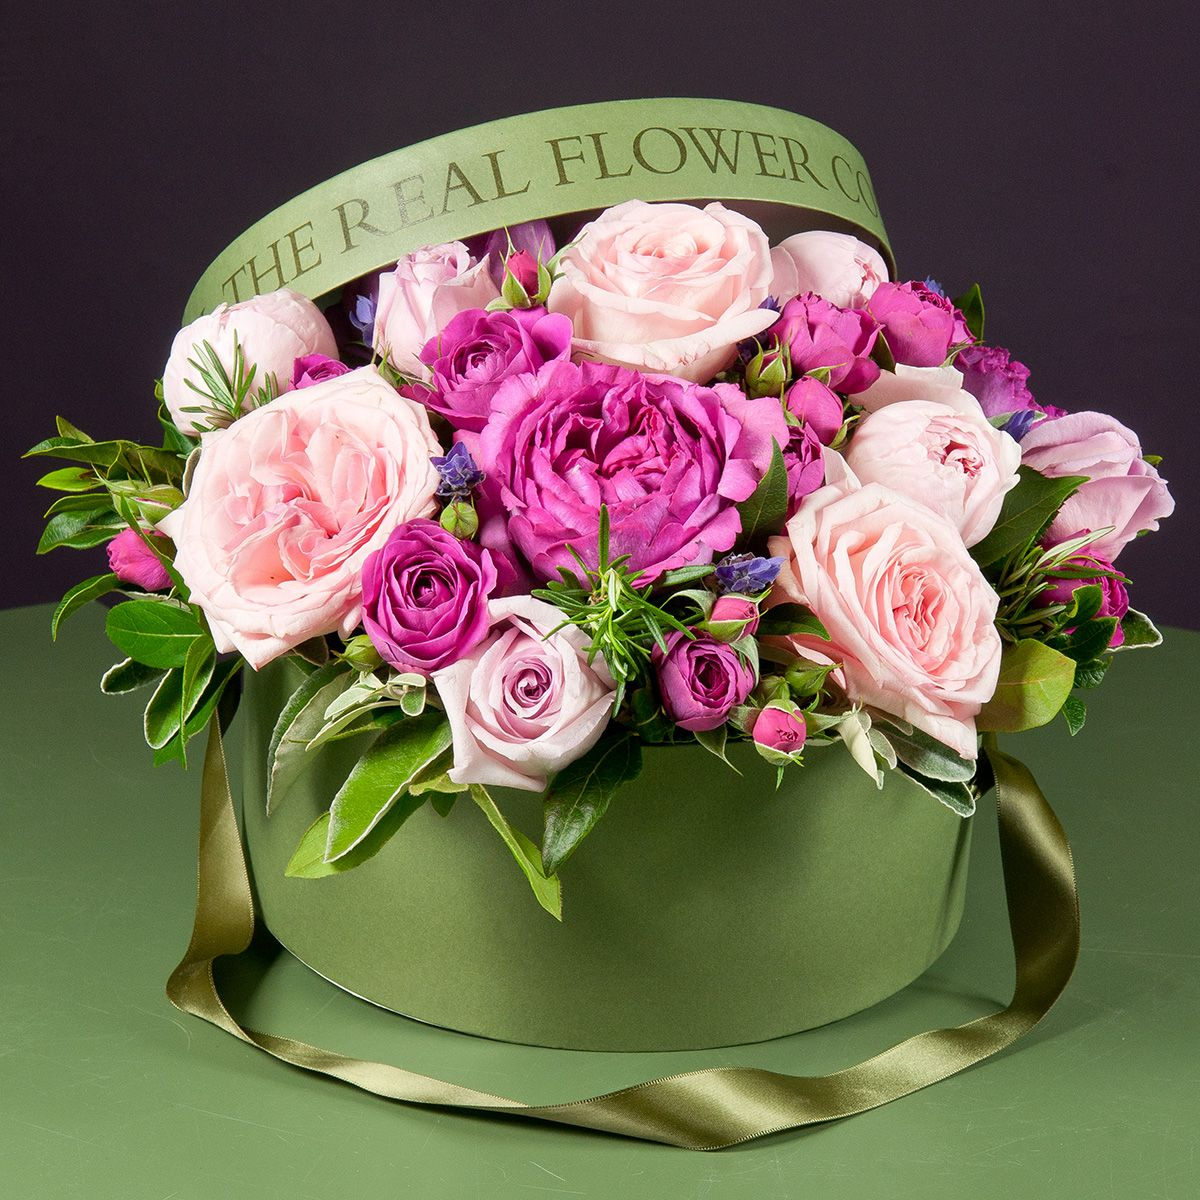 Delightful garden roses and herbs in a box for Mother's